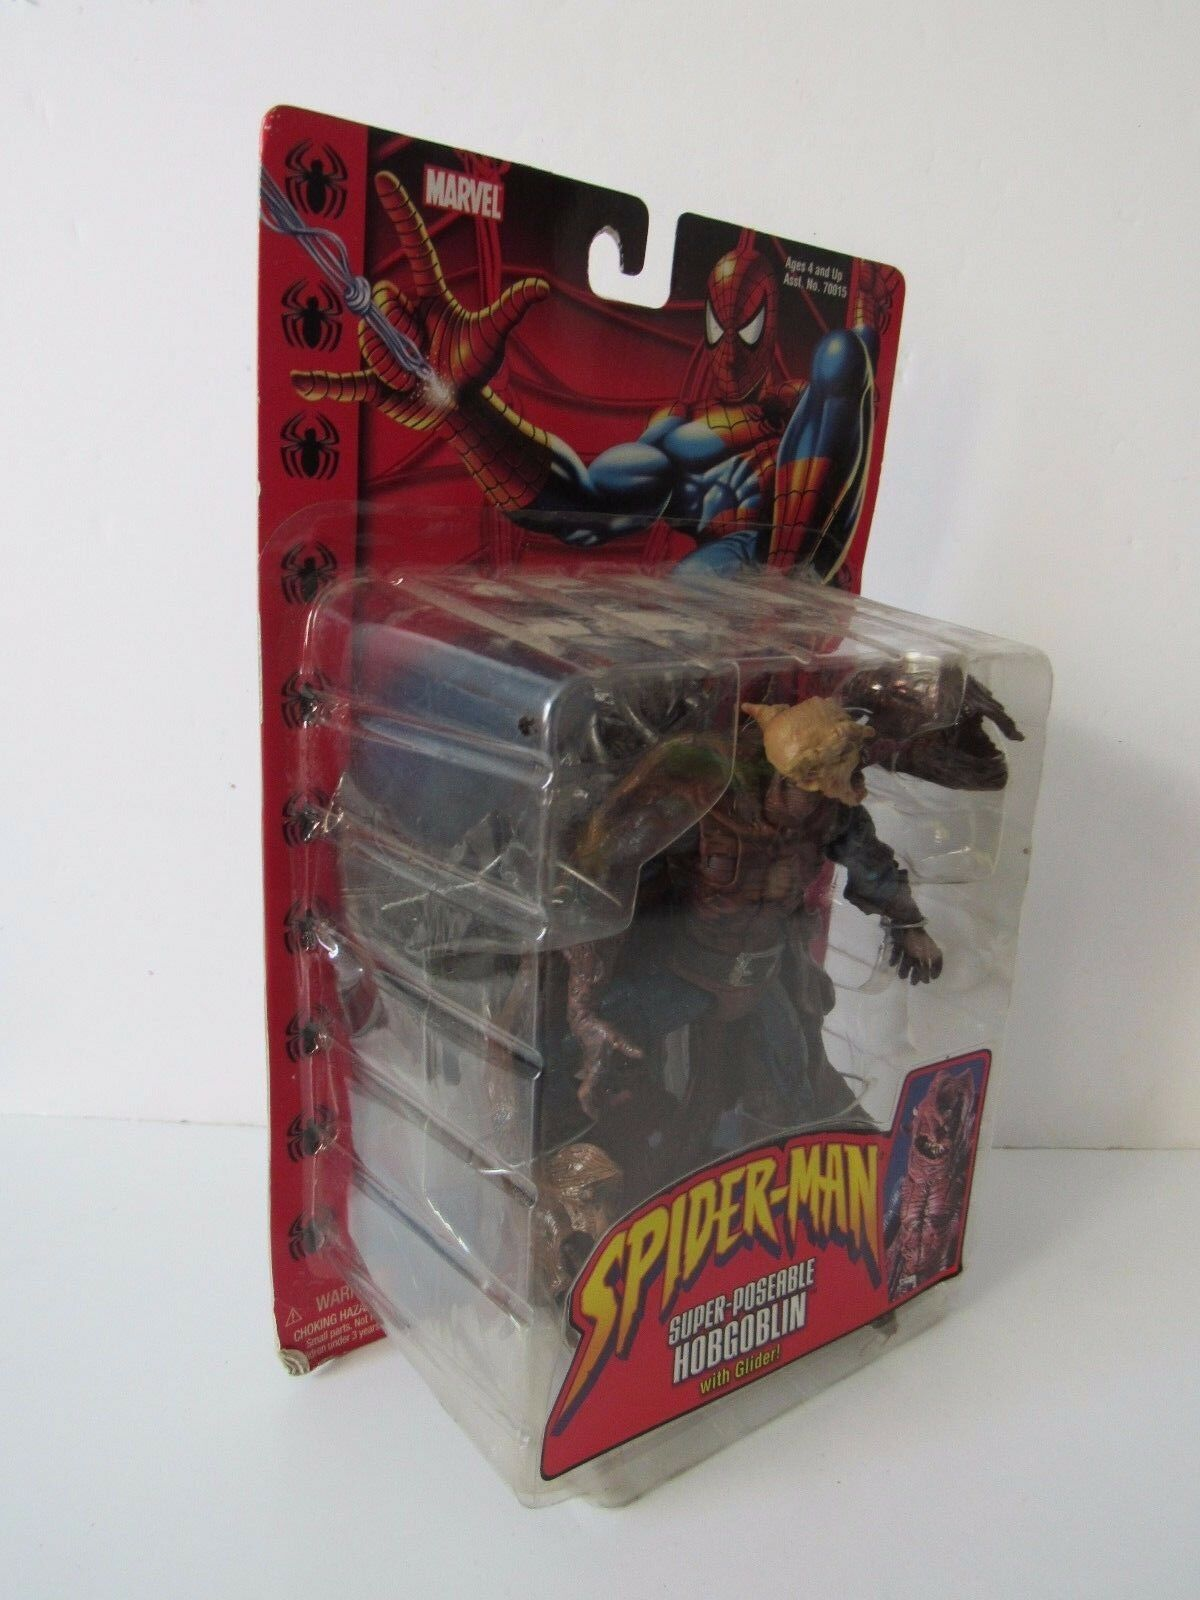 Marvel Legends Spider Man Super Super Super Poseable Hobgoblin with Glider Action Figure NIP 7321aa